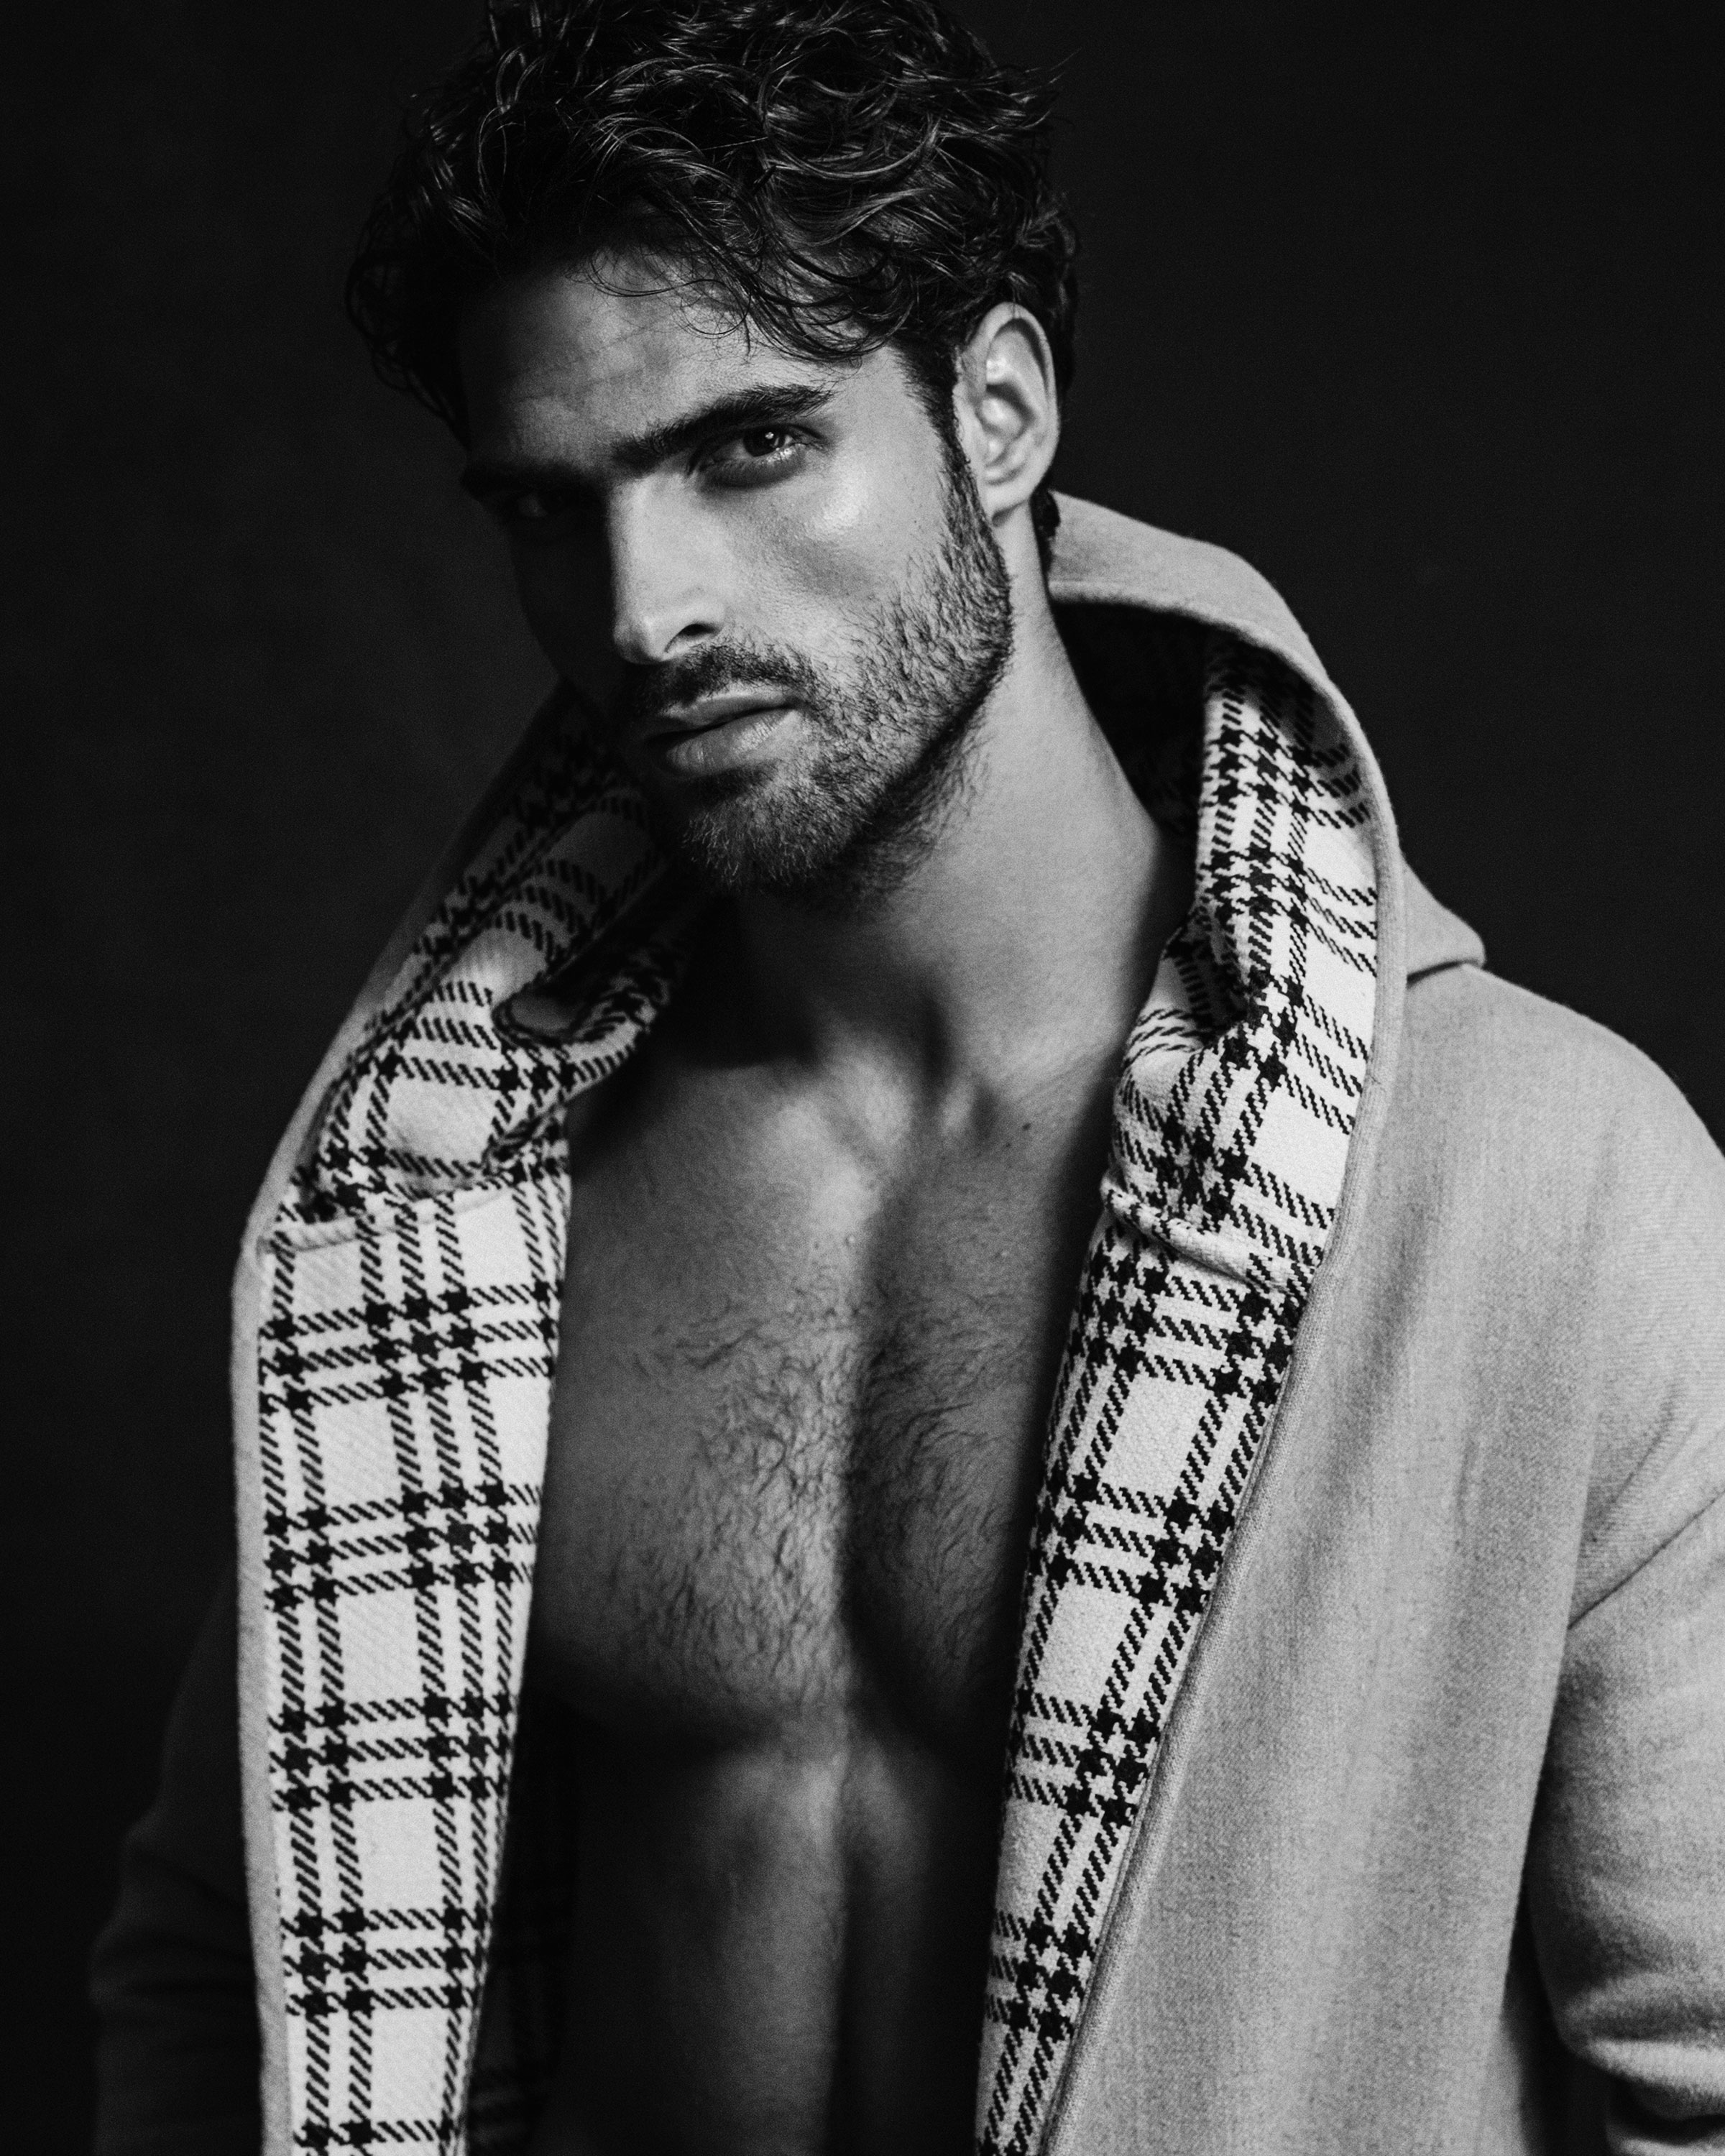 Exclusive: Sight Management Models by Alejandro Brito